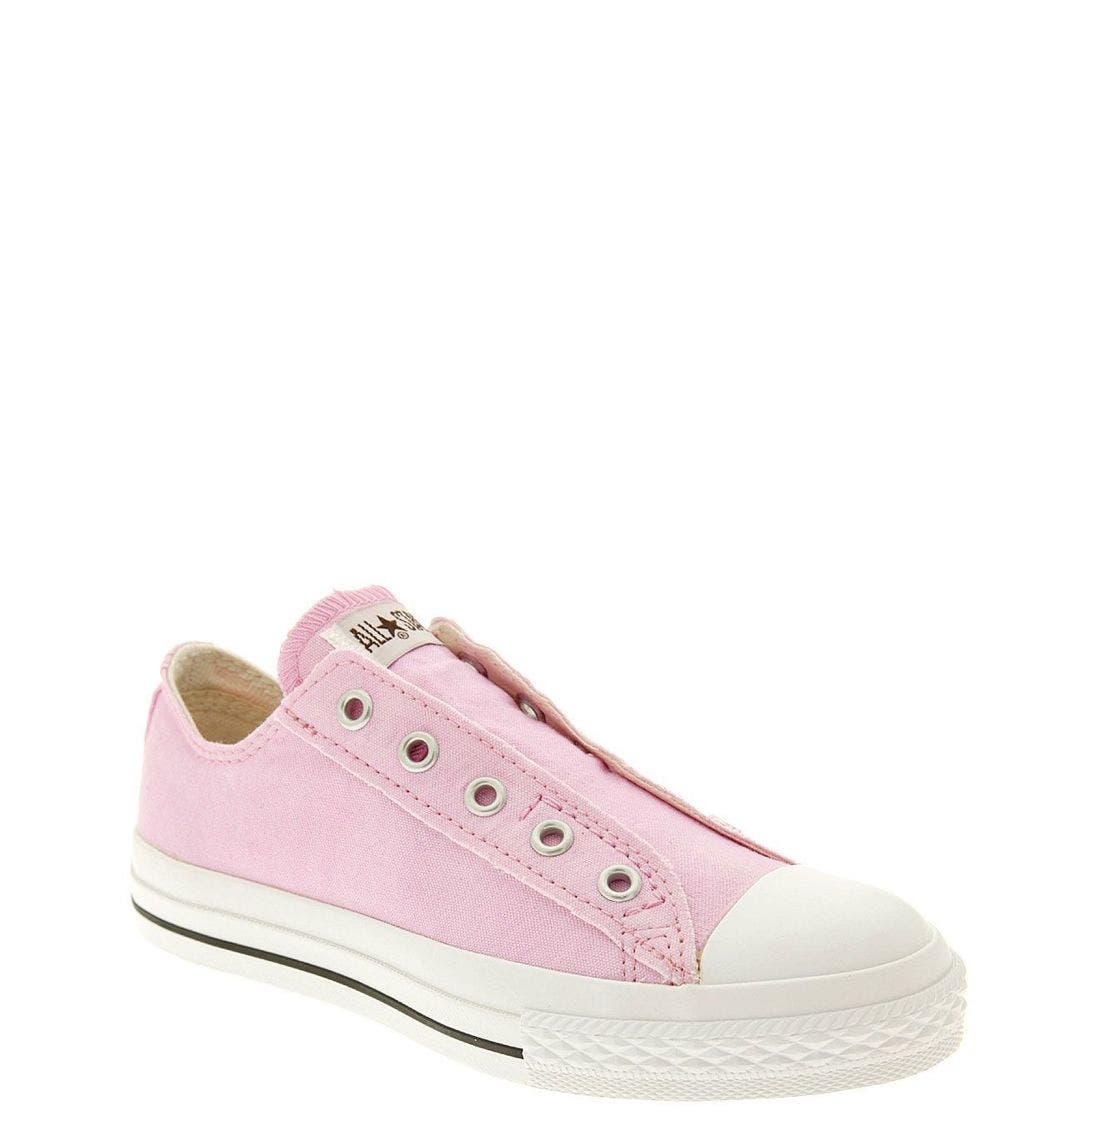 Alternate Image 1 Selected - Converse Chuck Taylor® Slip-On Sneaker (Big Kid)